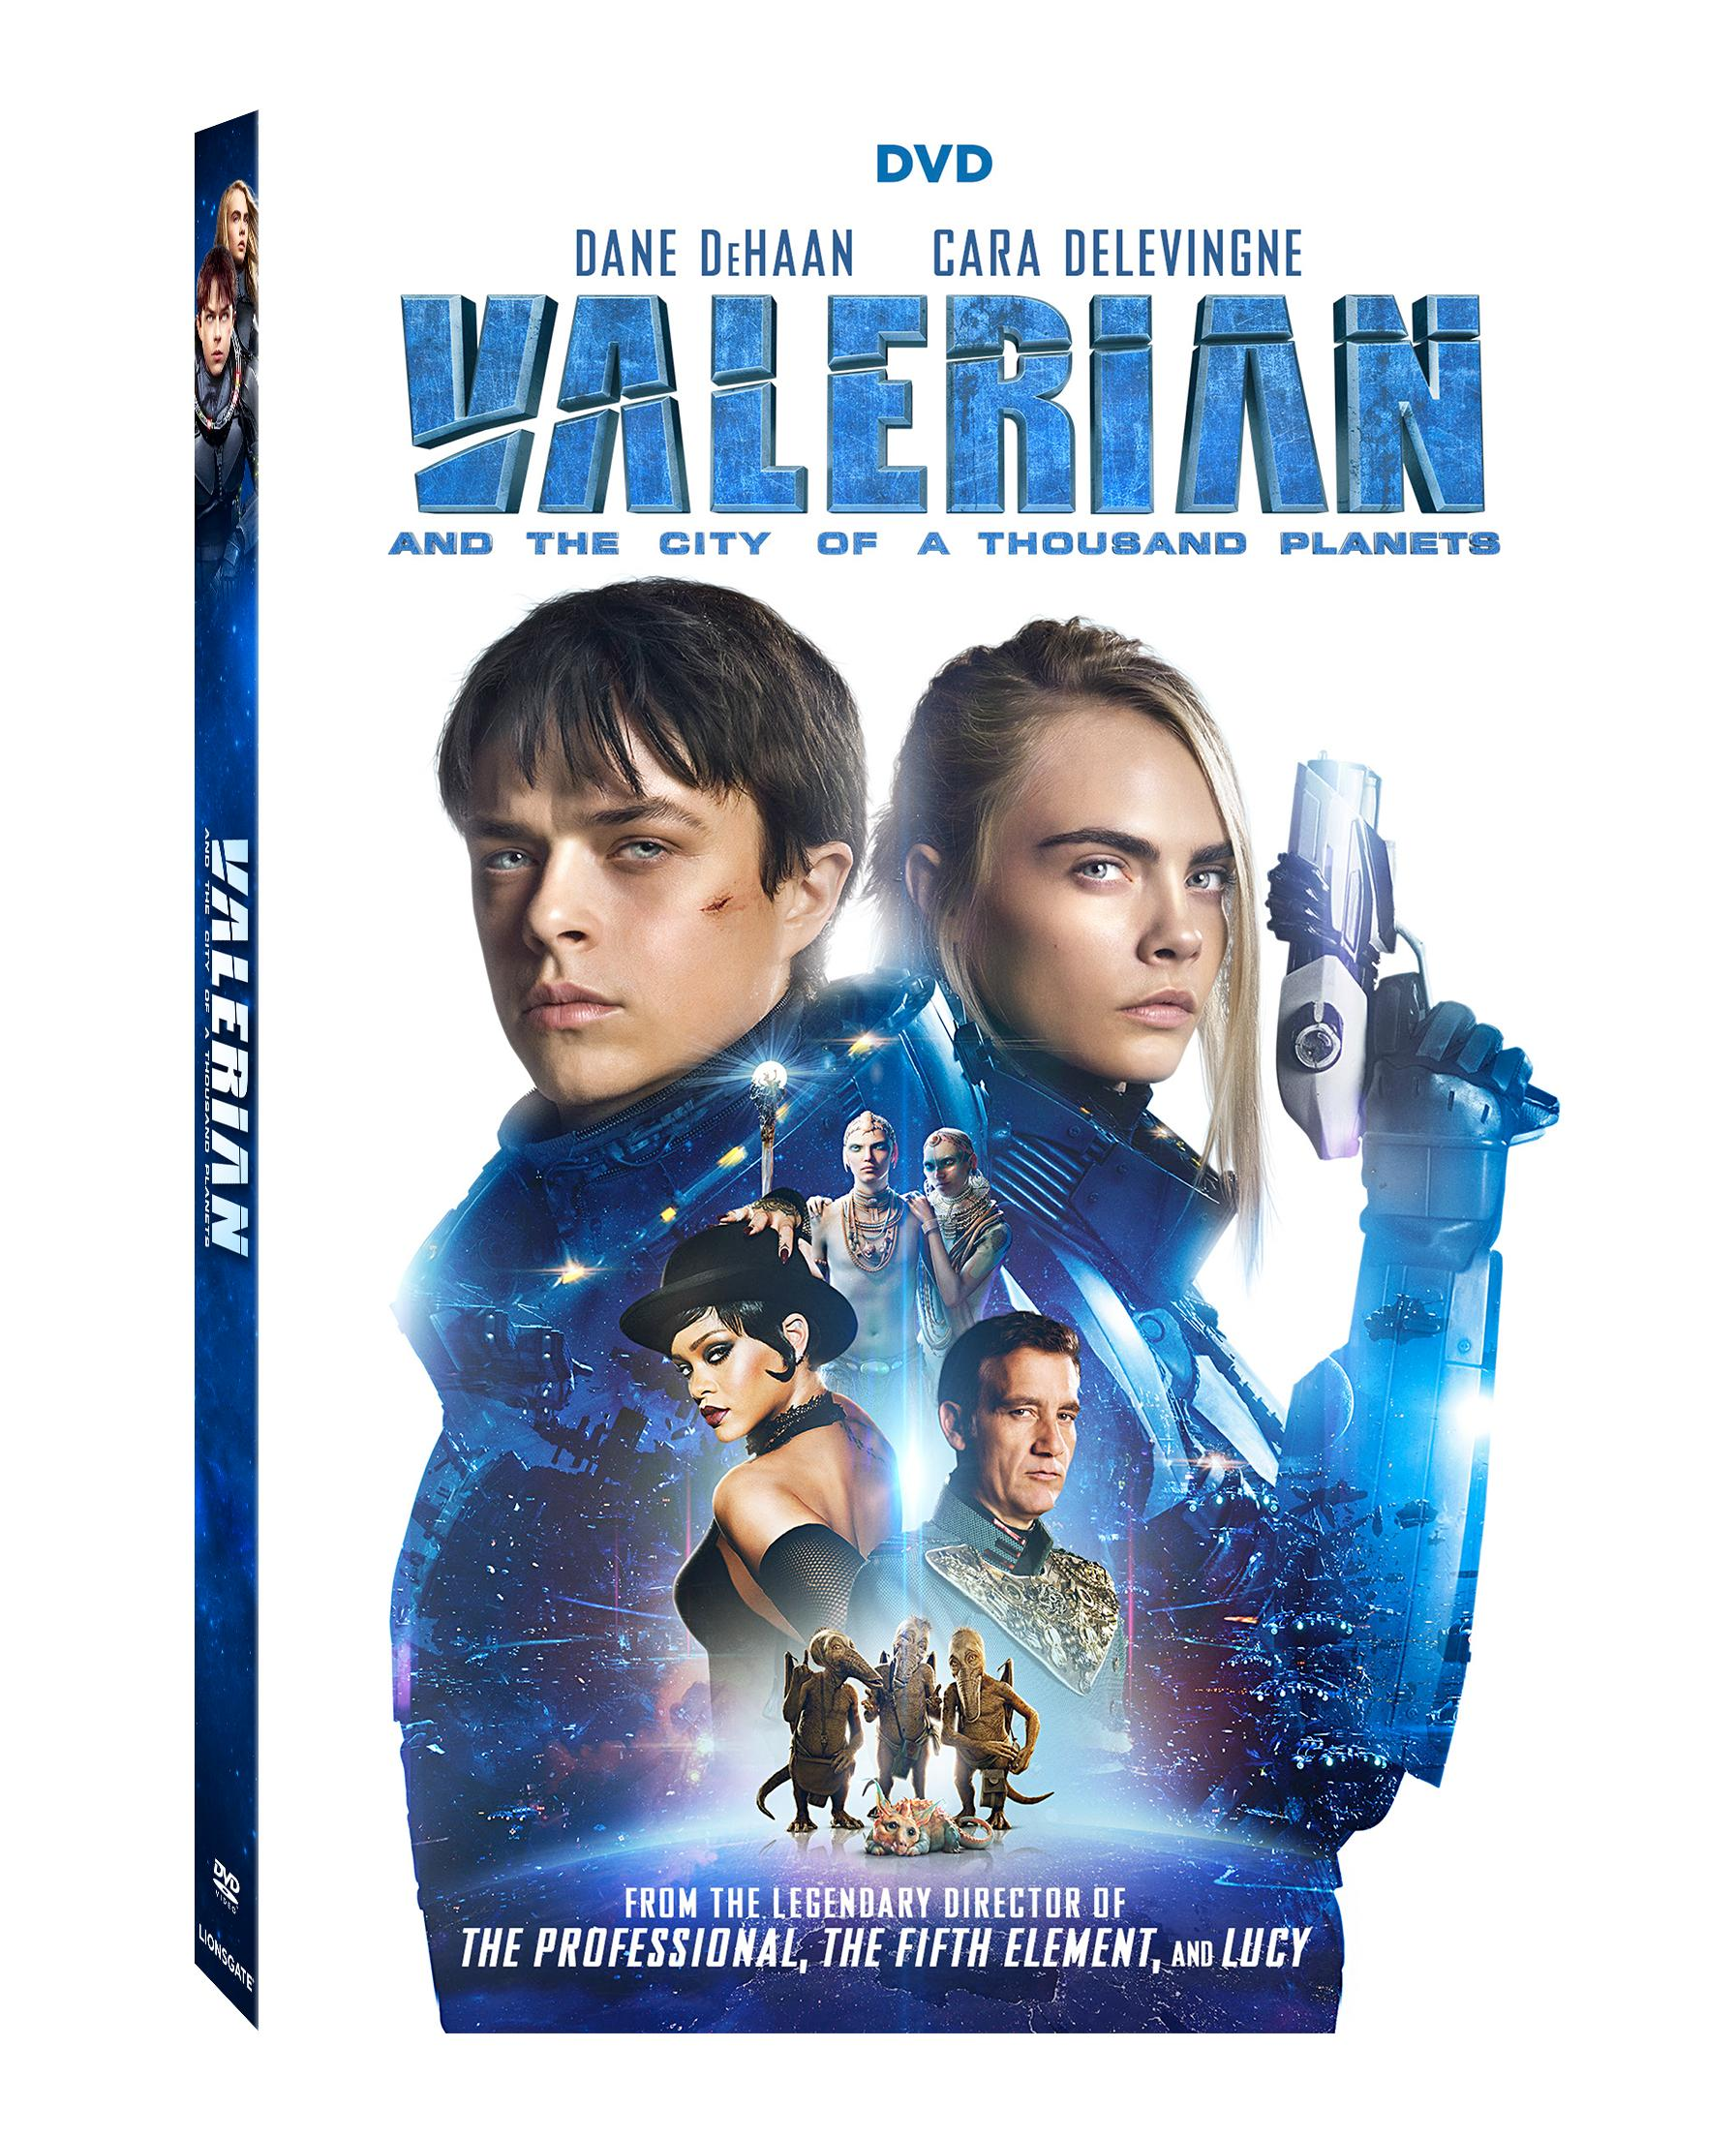 Clive Owen, Rihanna, Dane DeHaan, and Cara Delevingne in Valerian and the City of a Thousand Planets (2017)